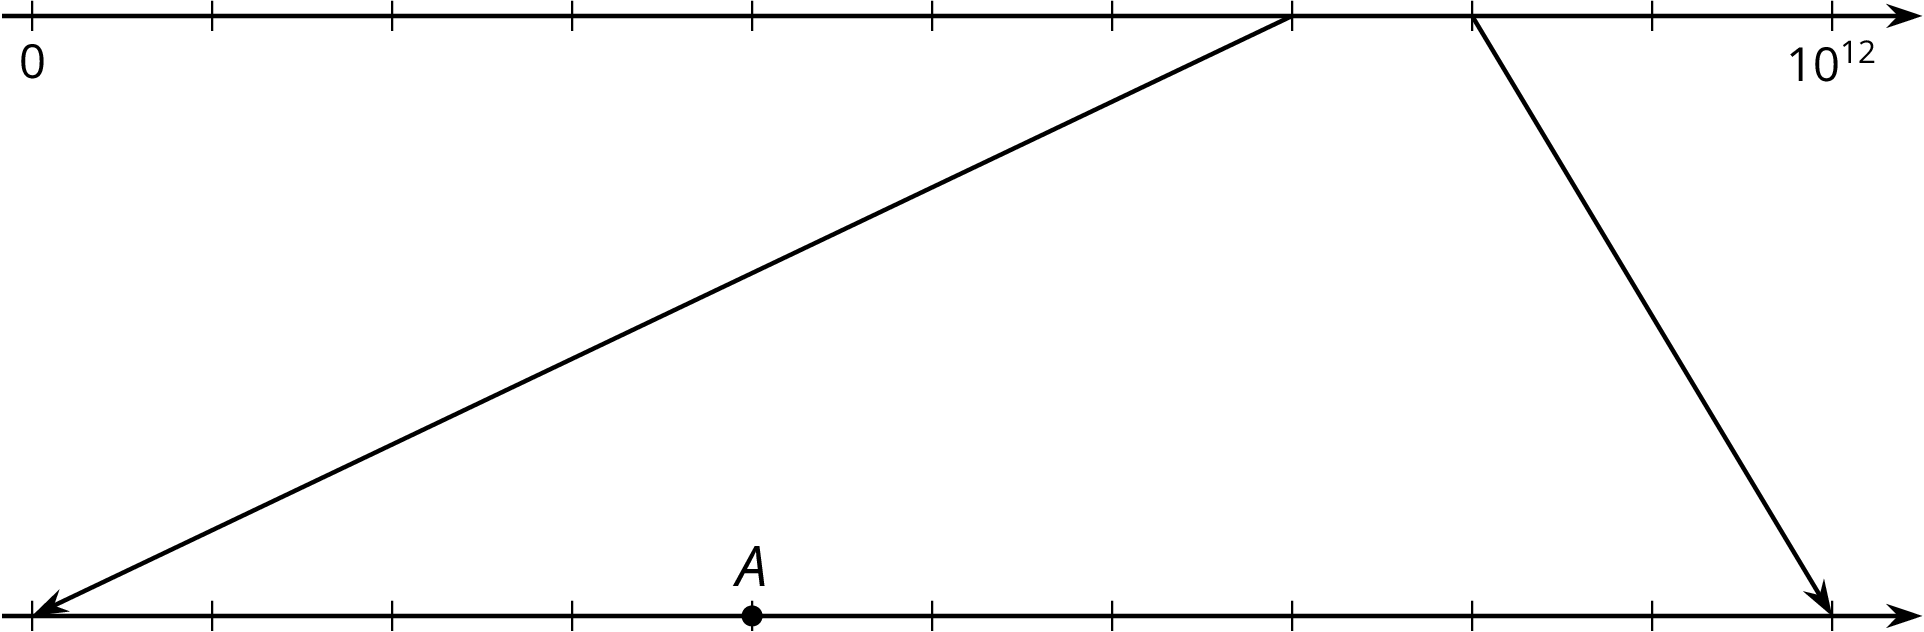 A zoomed in number line where the top and bottom number lines have eleven evenly spaced tick marks. The first tick mark on the top number line is labeled 0 and the last tick mark is labeled 10 to the twelfth power. The remaining tick marks are blank. Two lines extend downward from the eighth and ninth tick marks, pointing to the first and eleveth tick marks on the second number line, representing a zoomed in portion of the first number line. Point A is located on the fifth tick mark, and the remaining tick marks are blank.